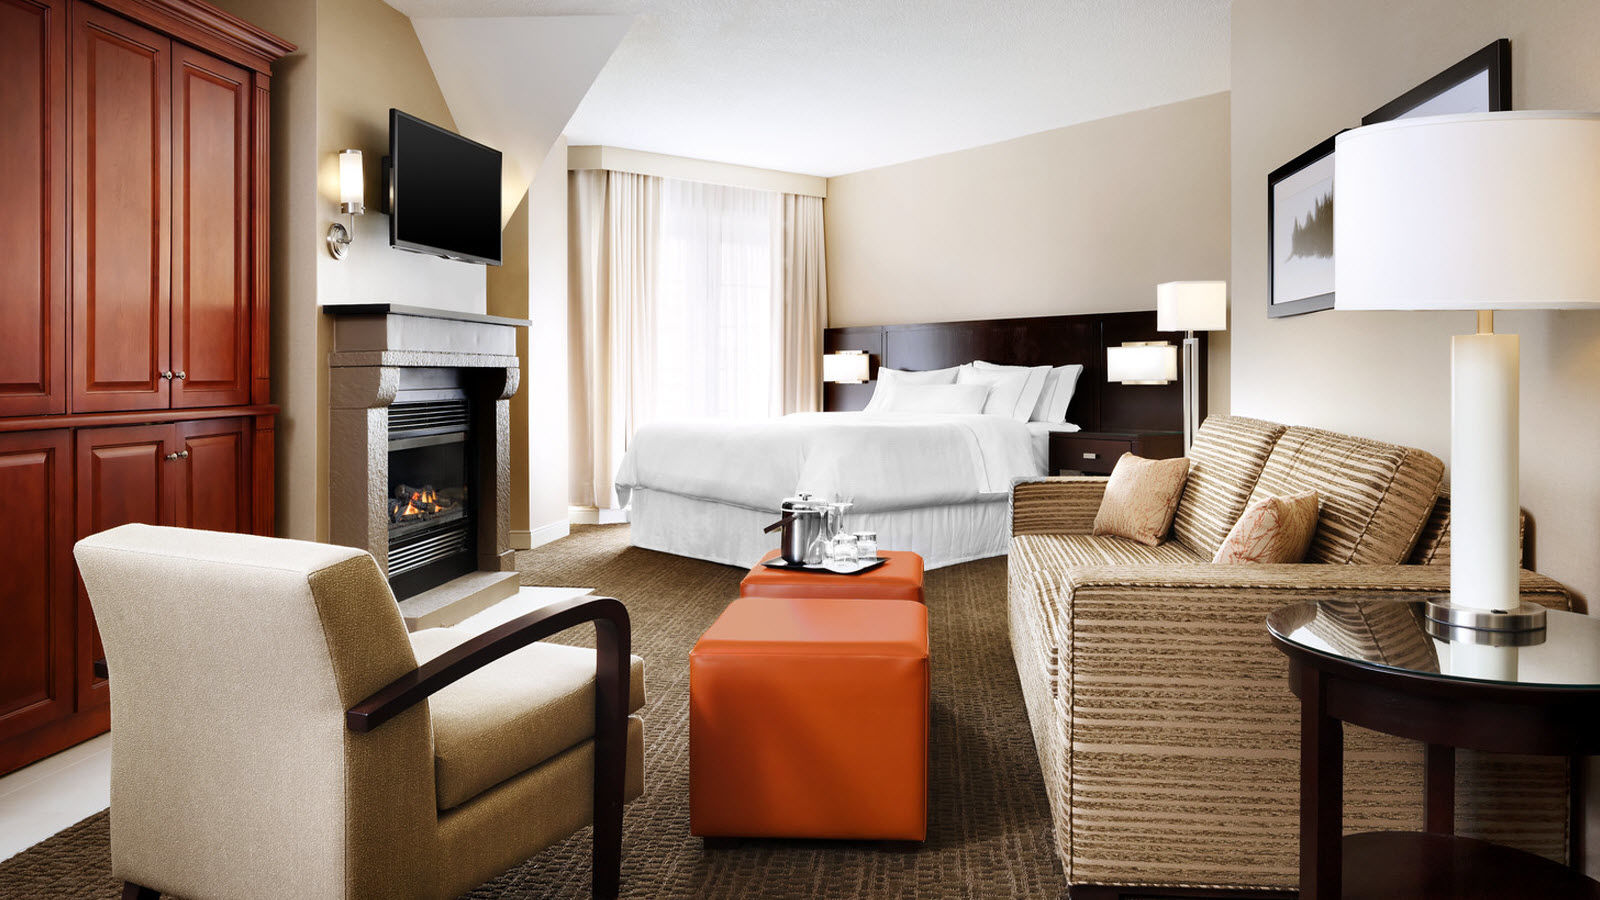 Chambre Deluxe | Le Westin Resort & Spa, Tremblant, Quebec